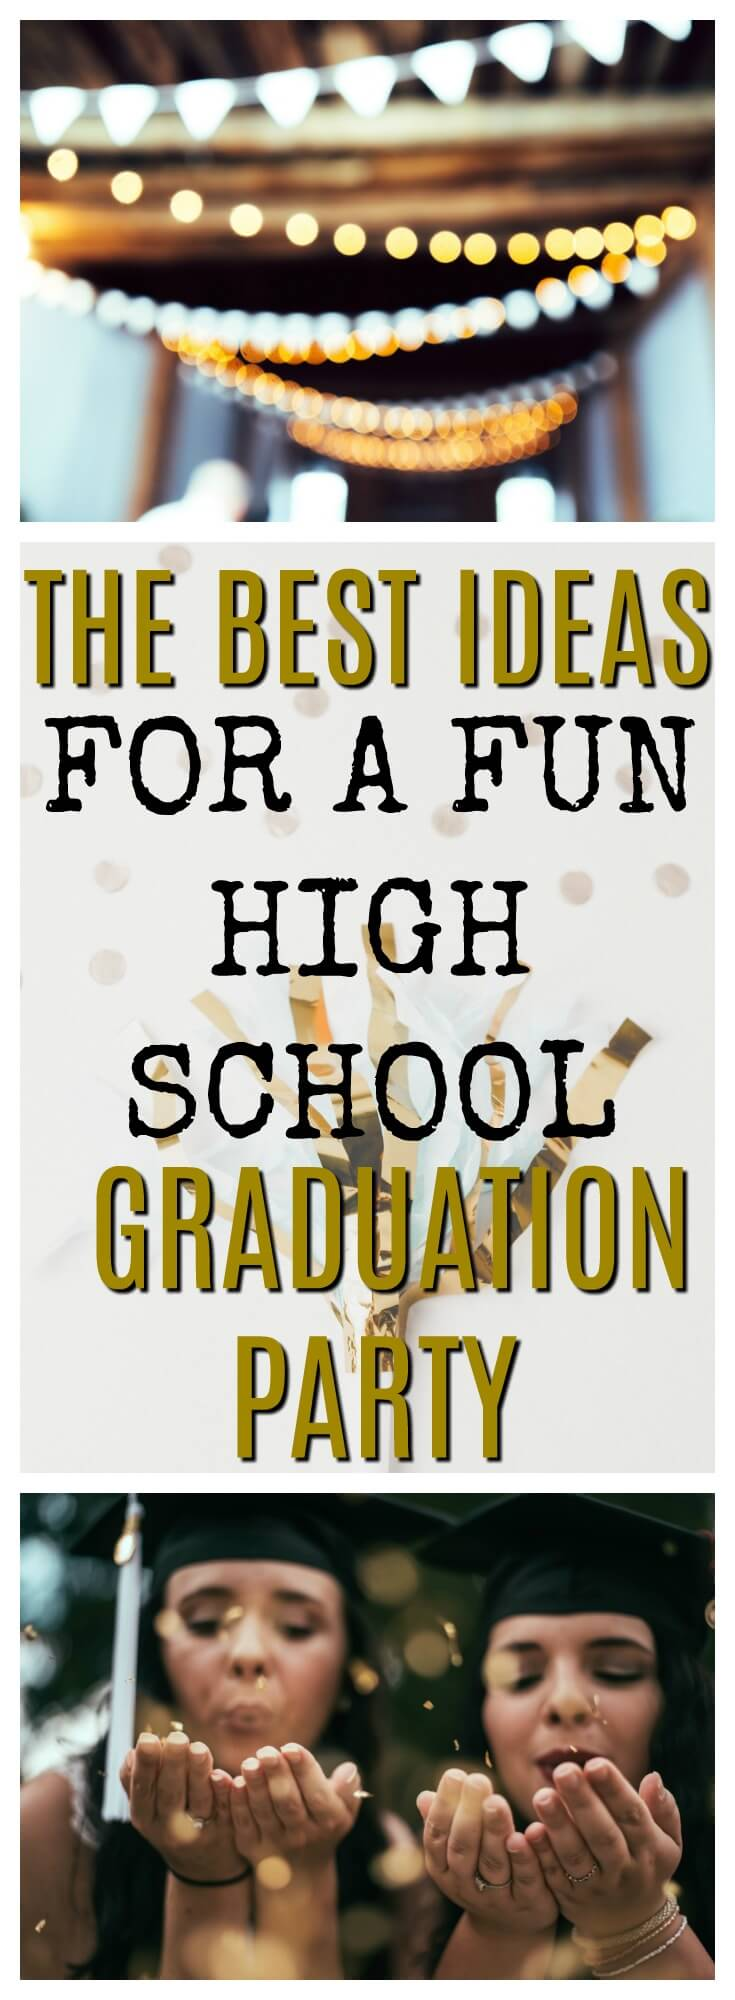 A Fun Graduation Party Is Deal For Your Make Sure High